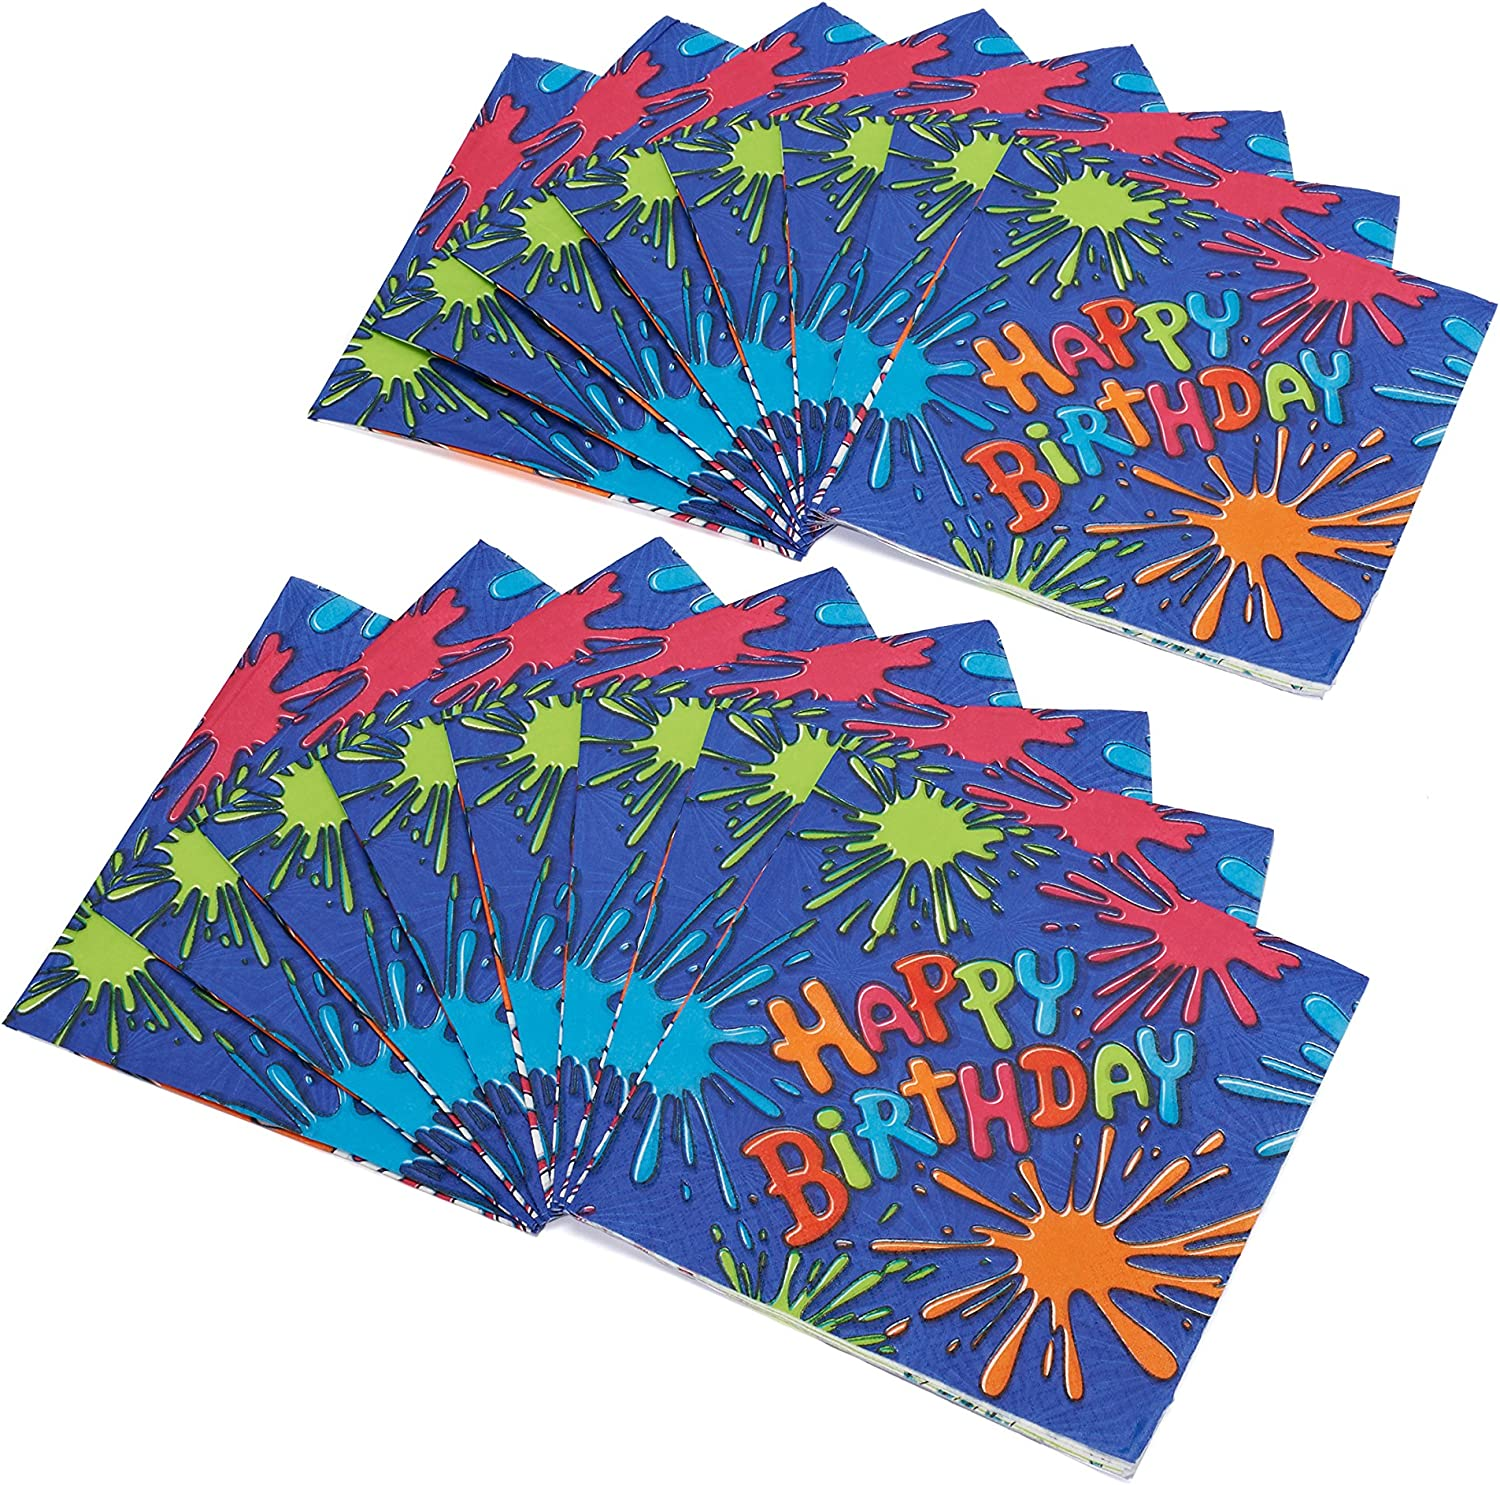 American Greetings Birthday Splat Lunch Napkins 16 Count Party Supplies Novelty